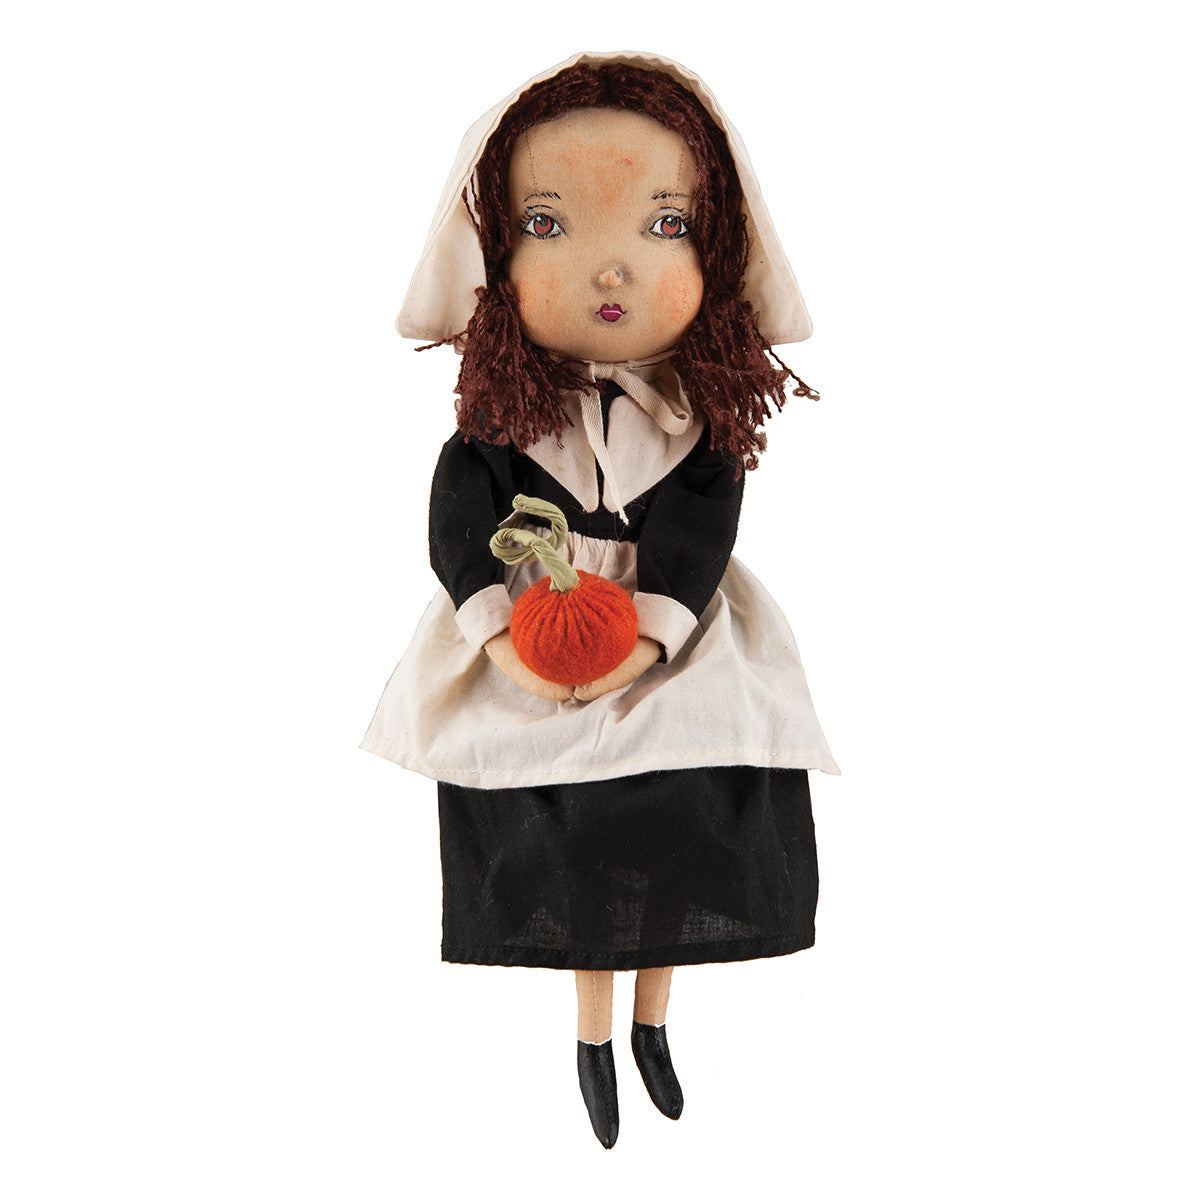 Eve Pilgrim Doll - Joe Spencer Thanksgiving Dolls